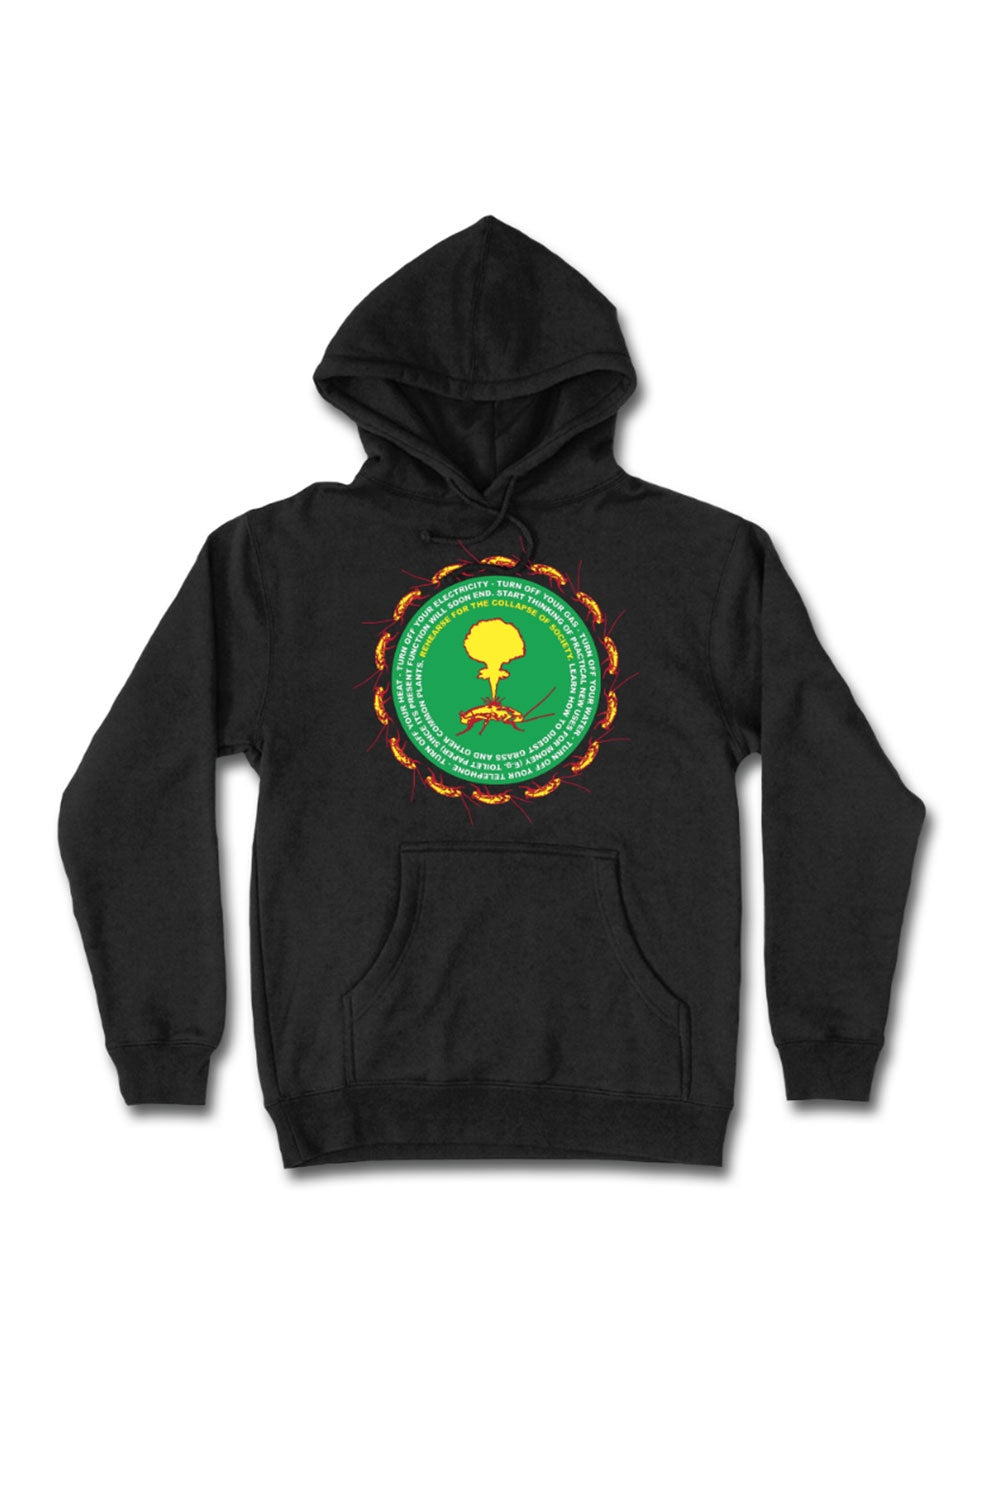 Come Sundown Collapse Hoodie | Come Sundown Clothing & Accessories